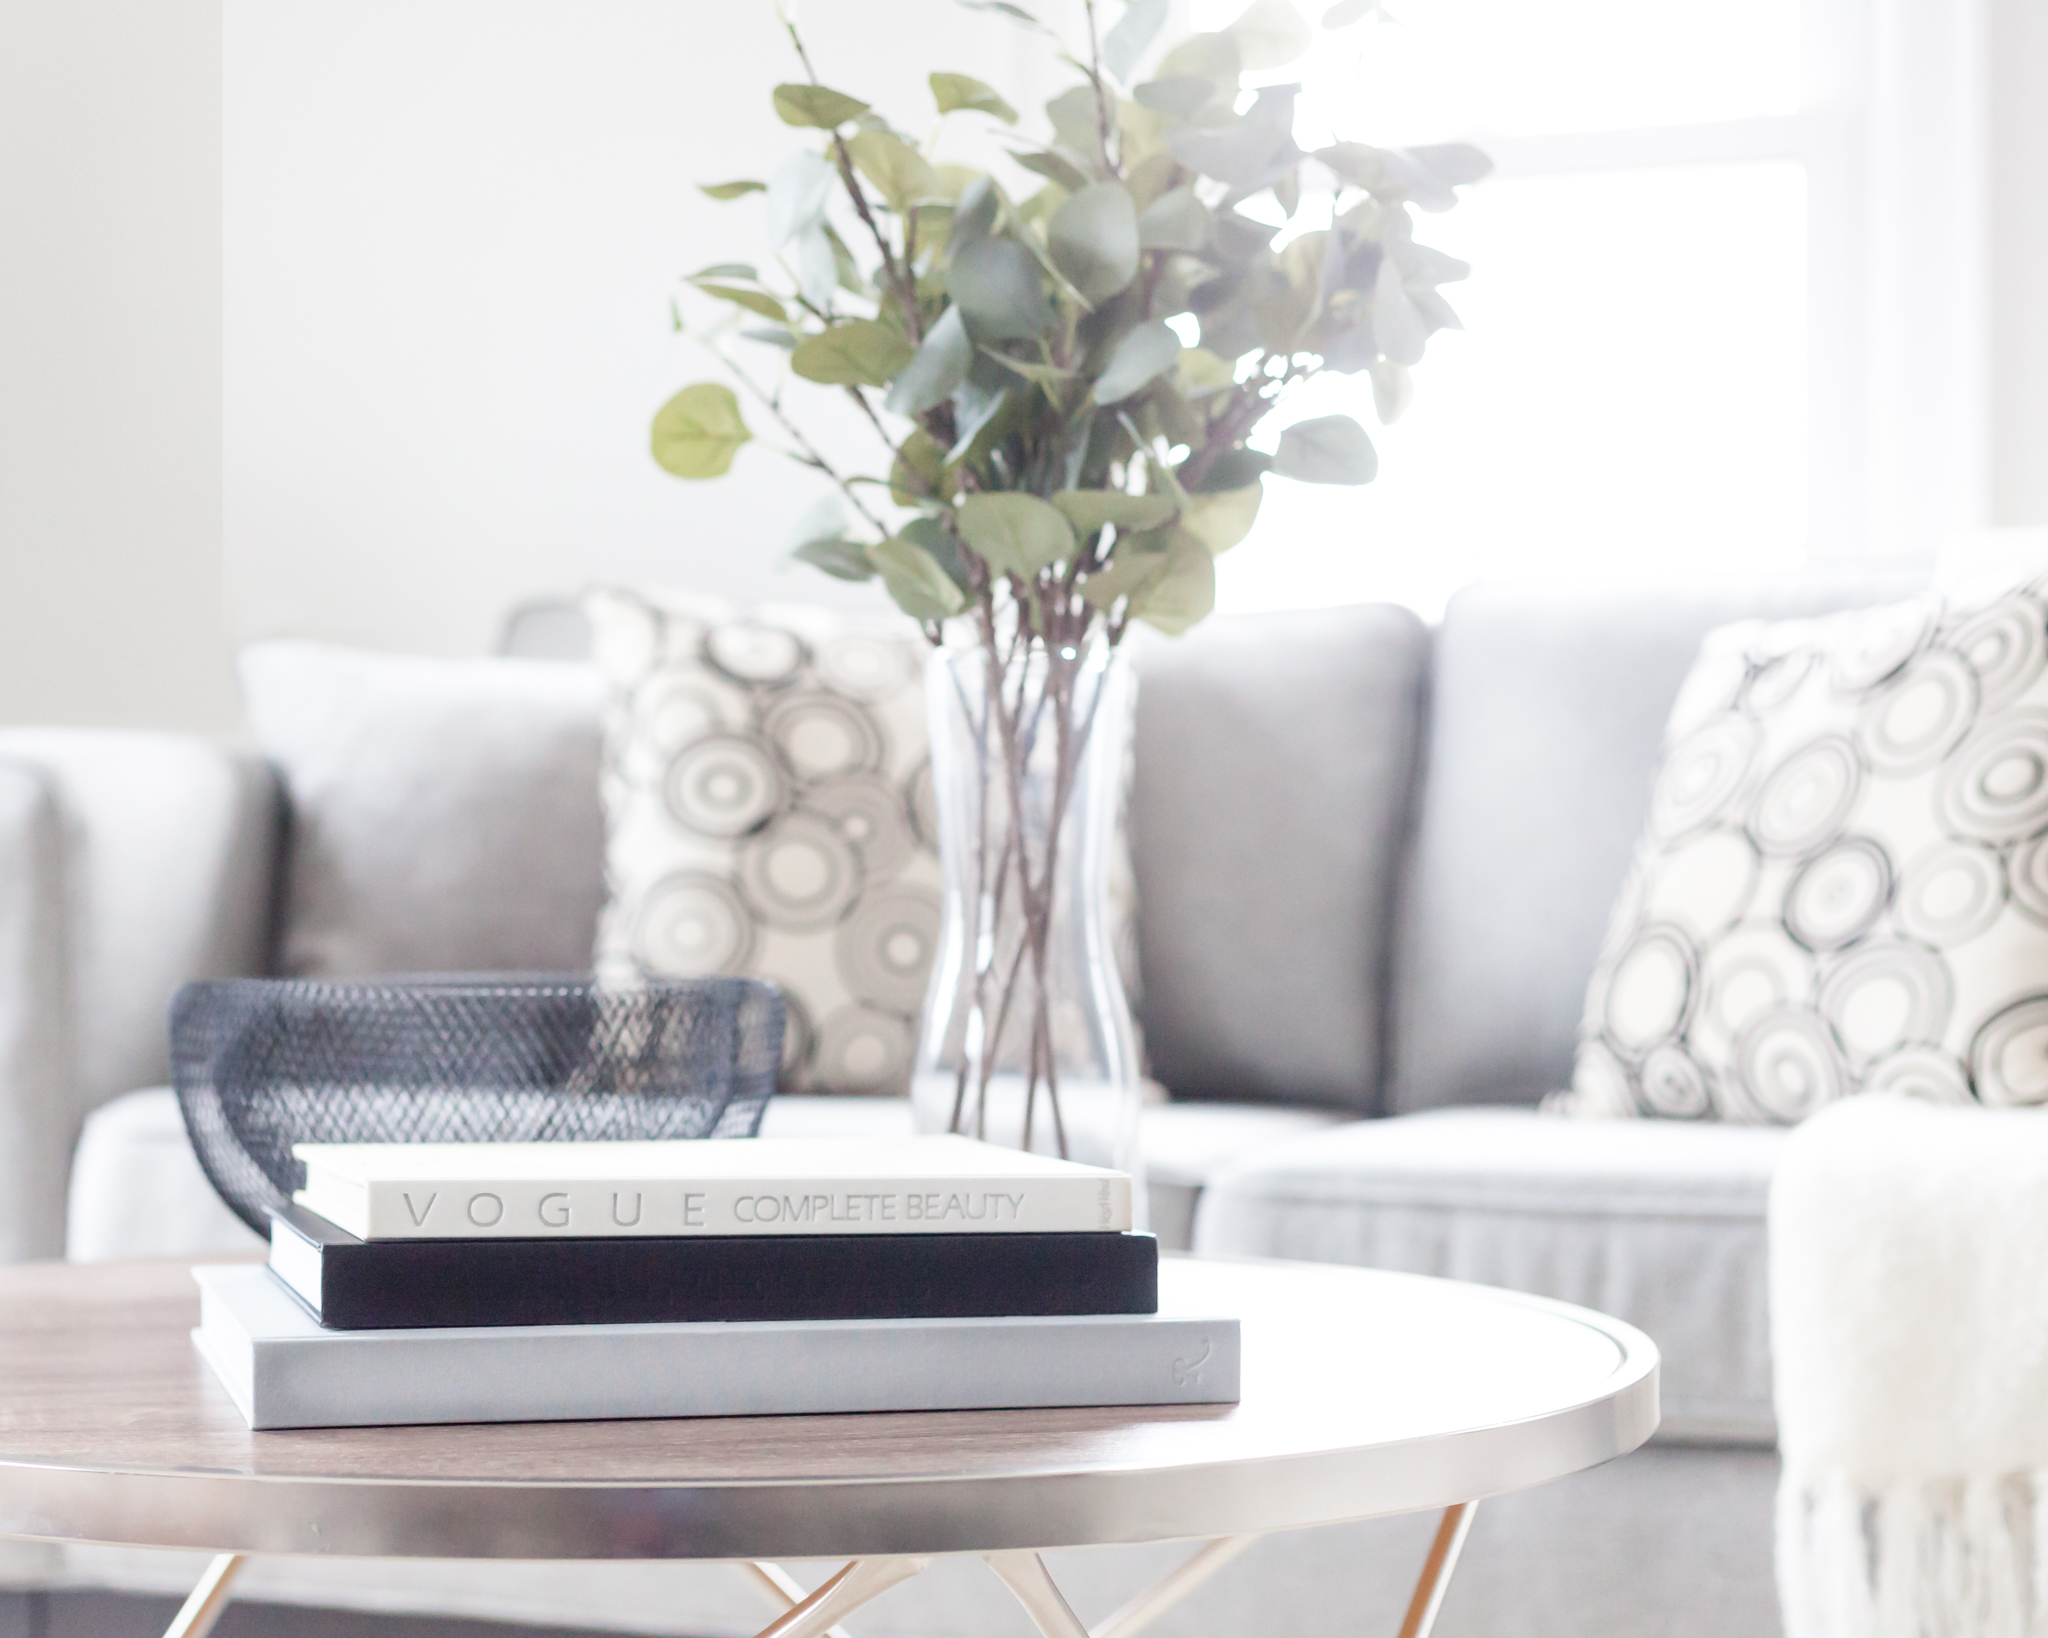 Home Interior Staging in Barrie provided by New Leaf Decor. Coffee table books are great staging props when selling your home.